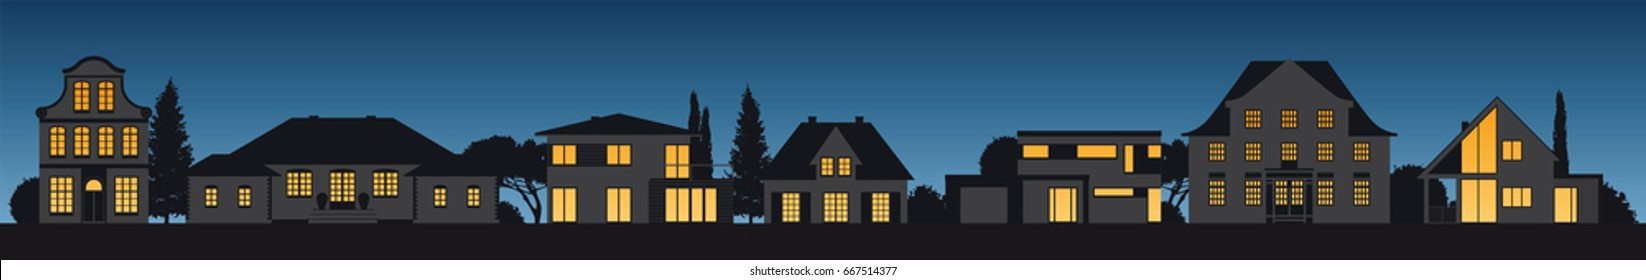 different old and modern vector house facades illuminated by night